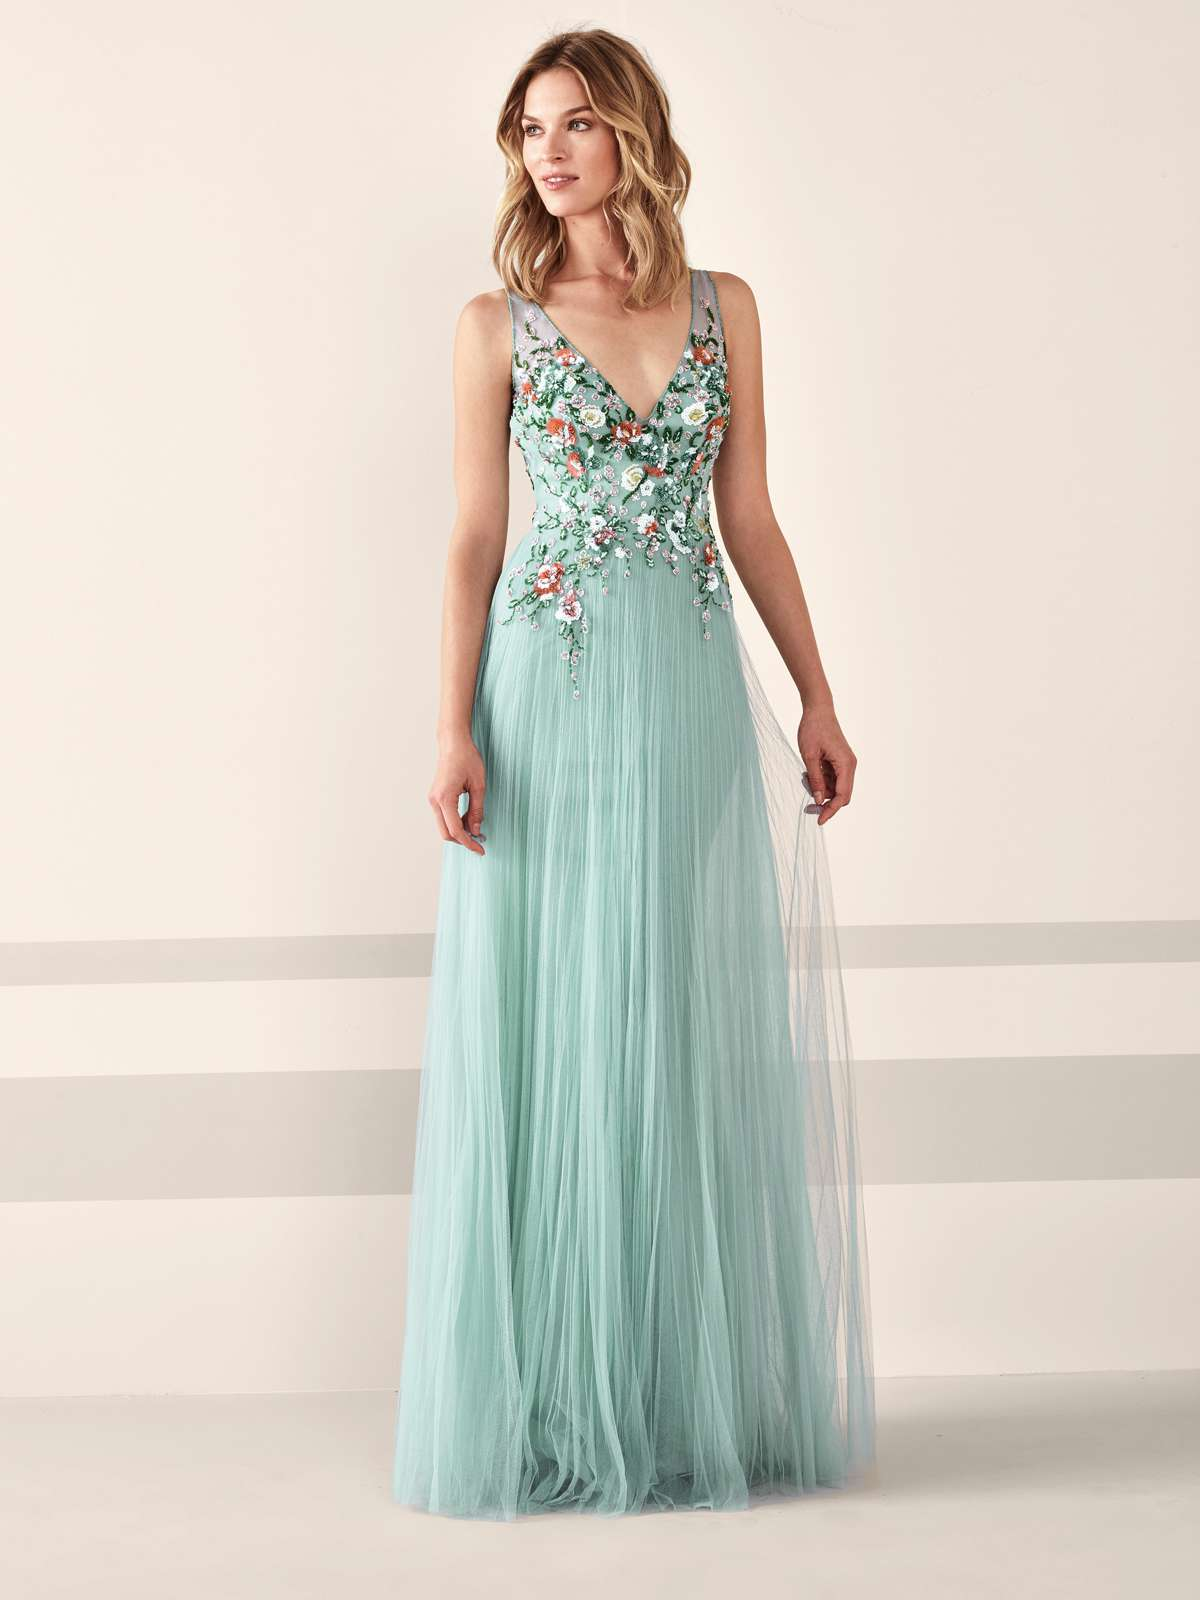 2379f73ce003 Gorgeous wedding guest dresses from Pronovias - Find Your Dream Dress